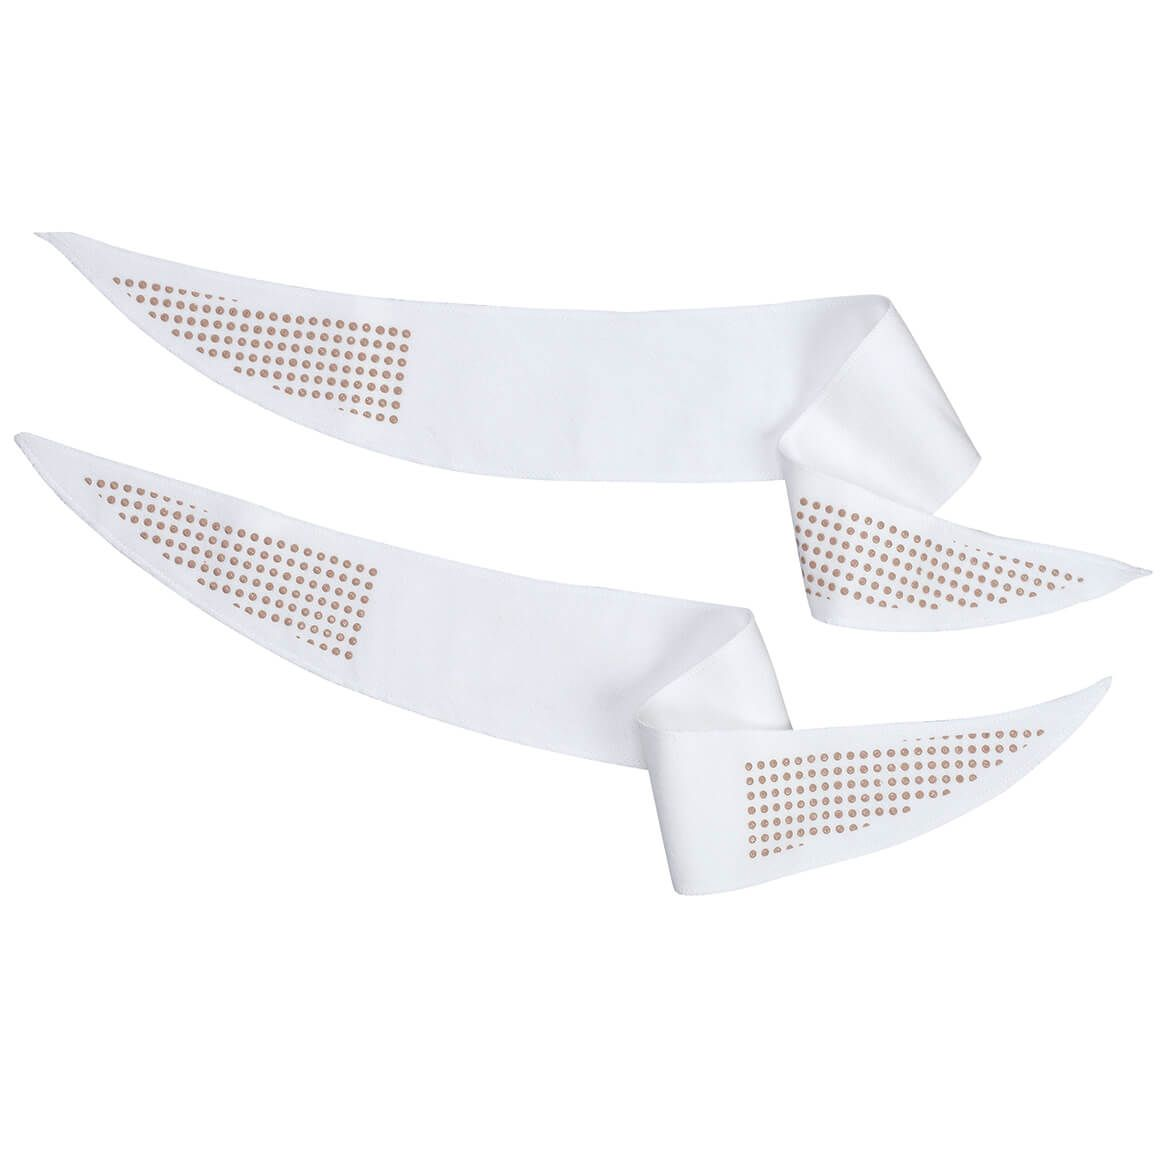 Tummy Liners with Anti-Slip Comfort Dots, Set of 2-355388